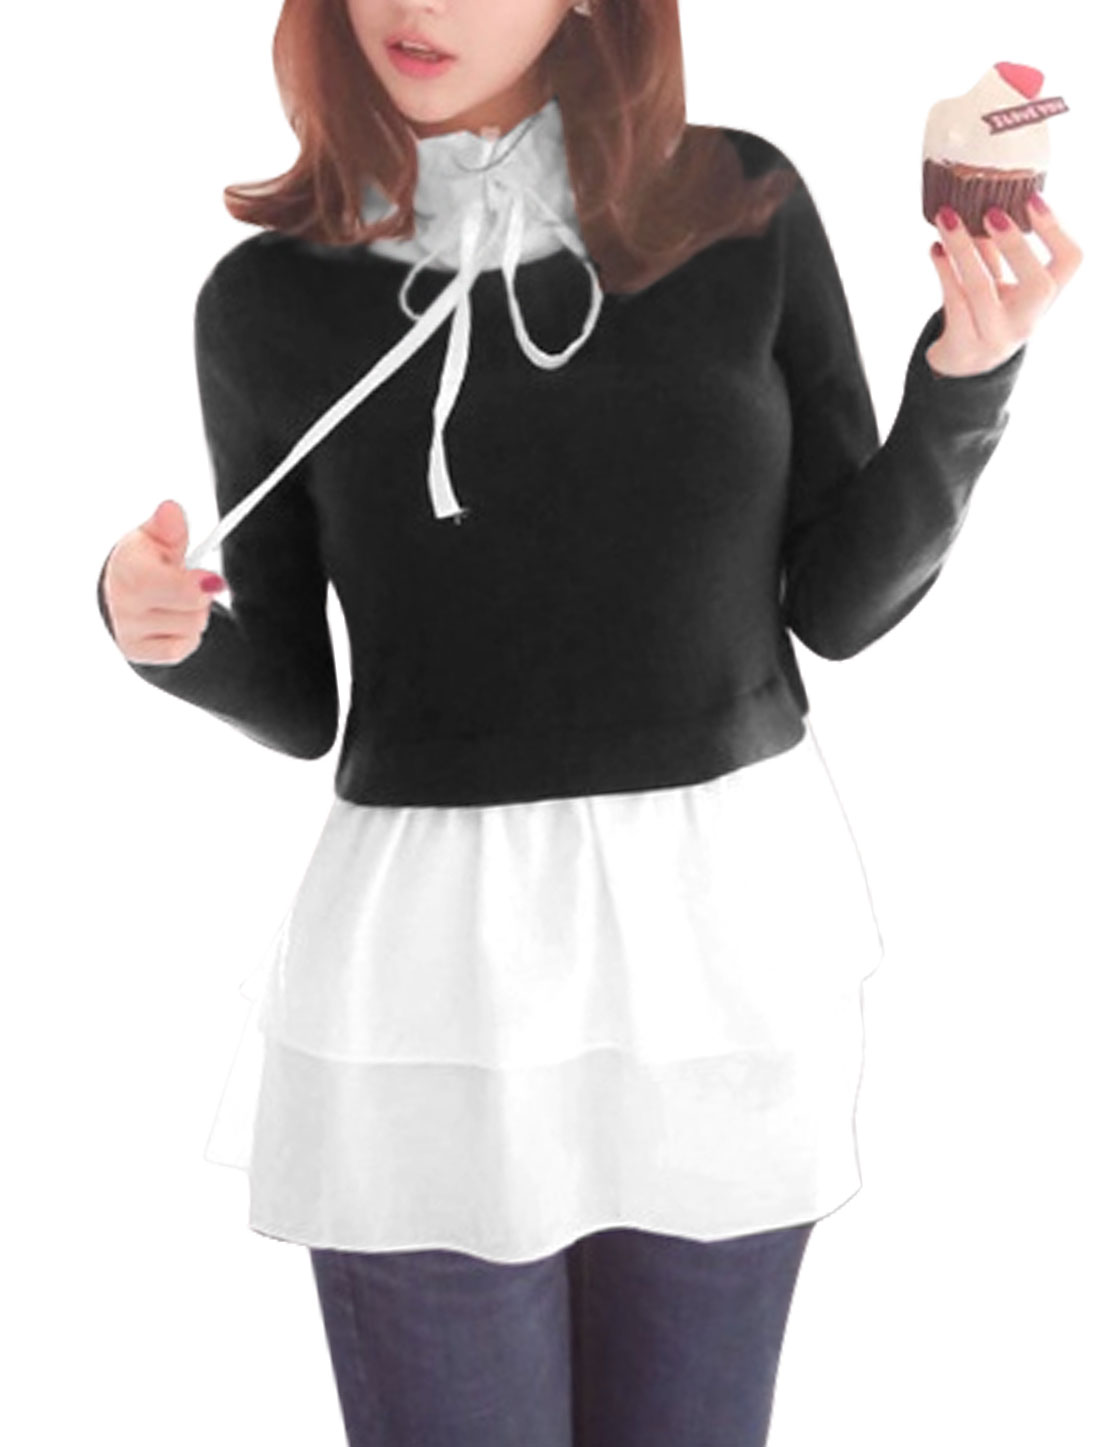 Ladies Black White Long Sleeves Drawstring Stand Collar Splice Shirt XS